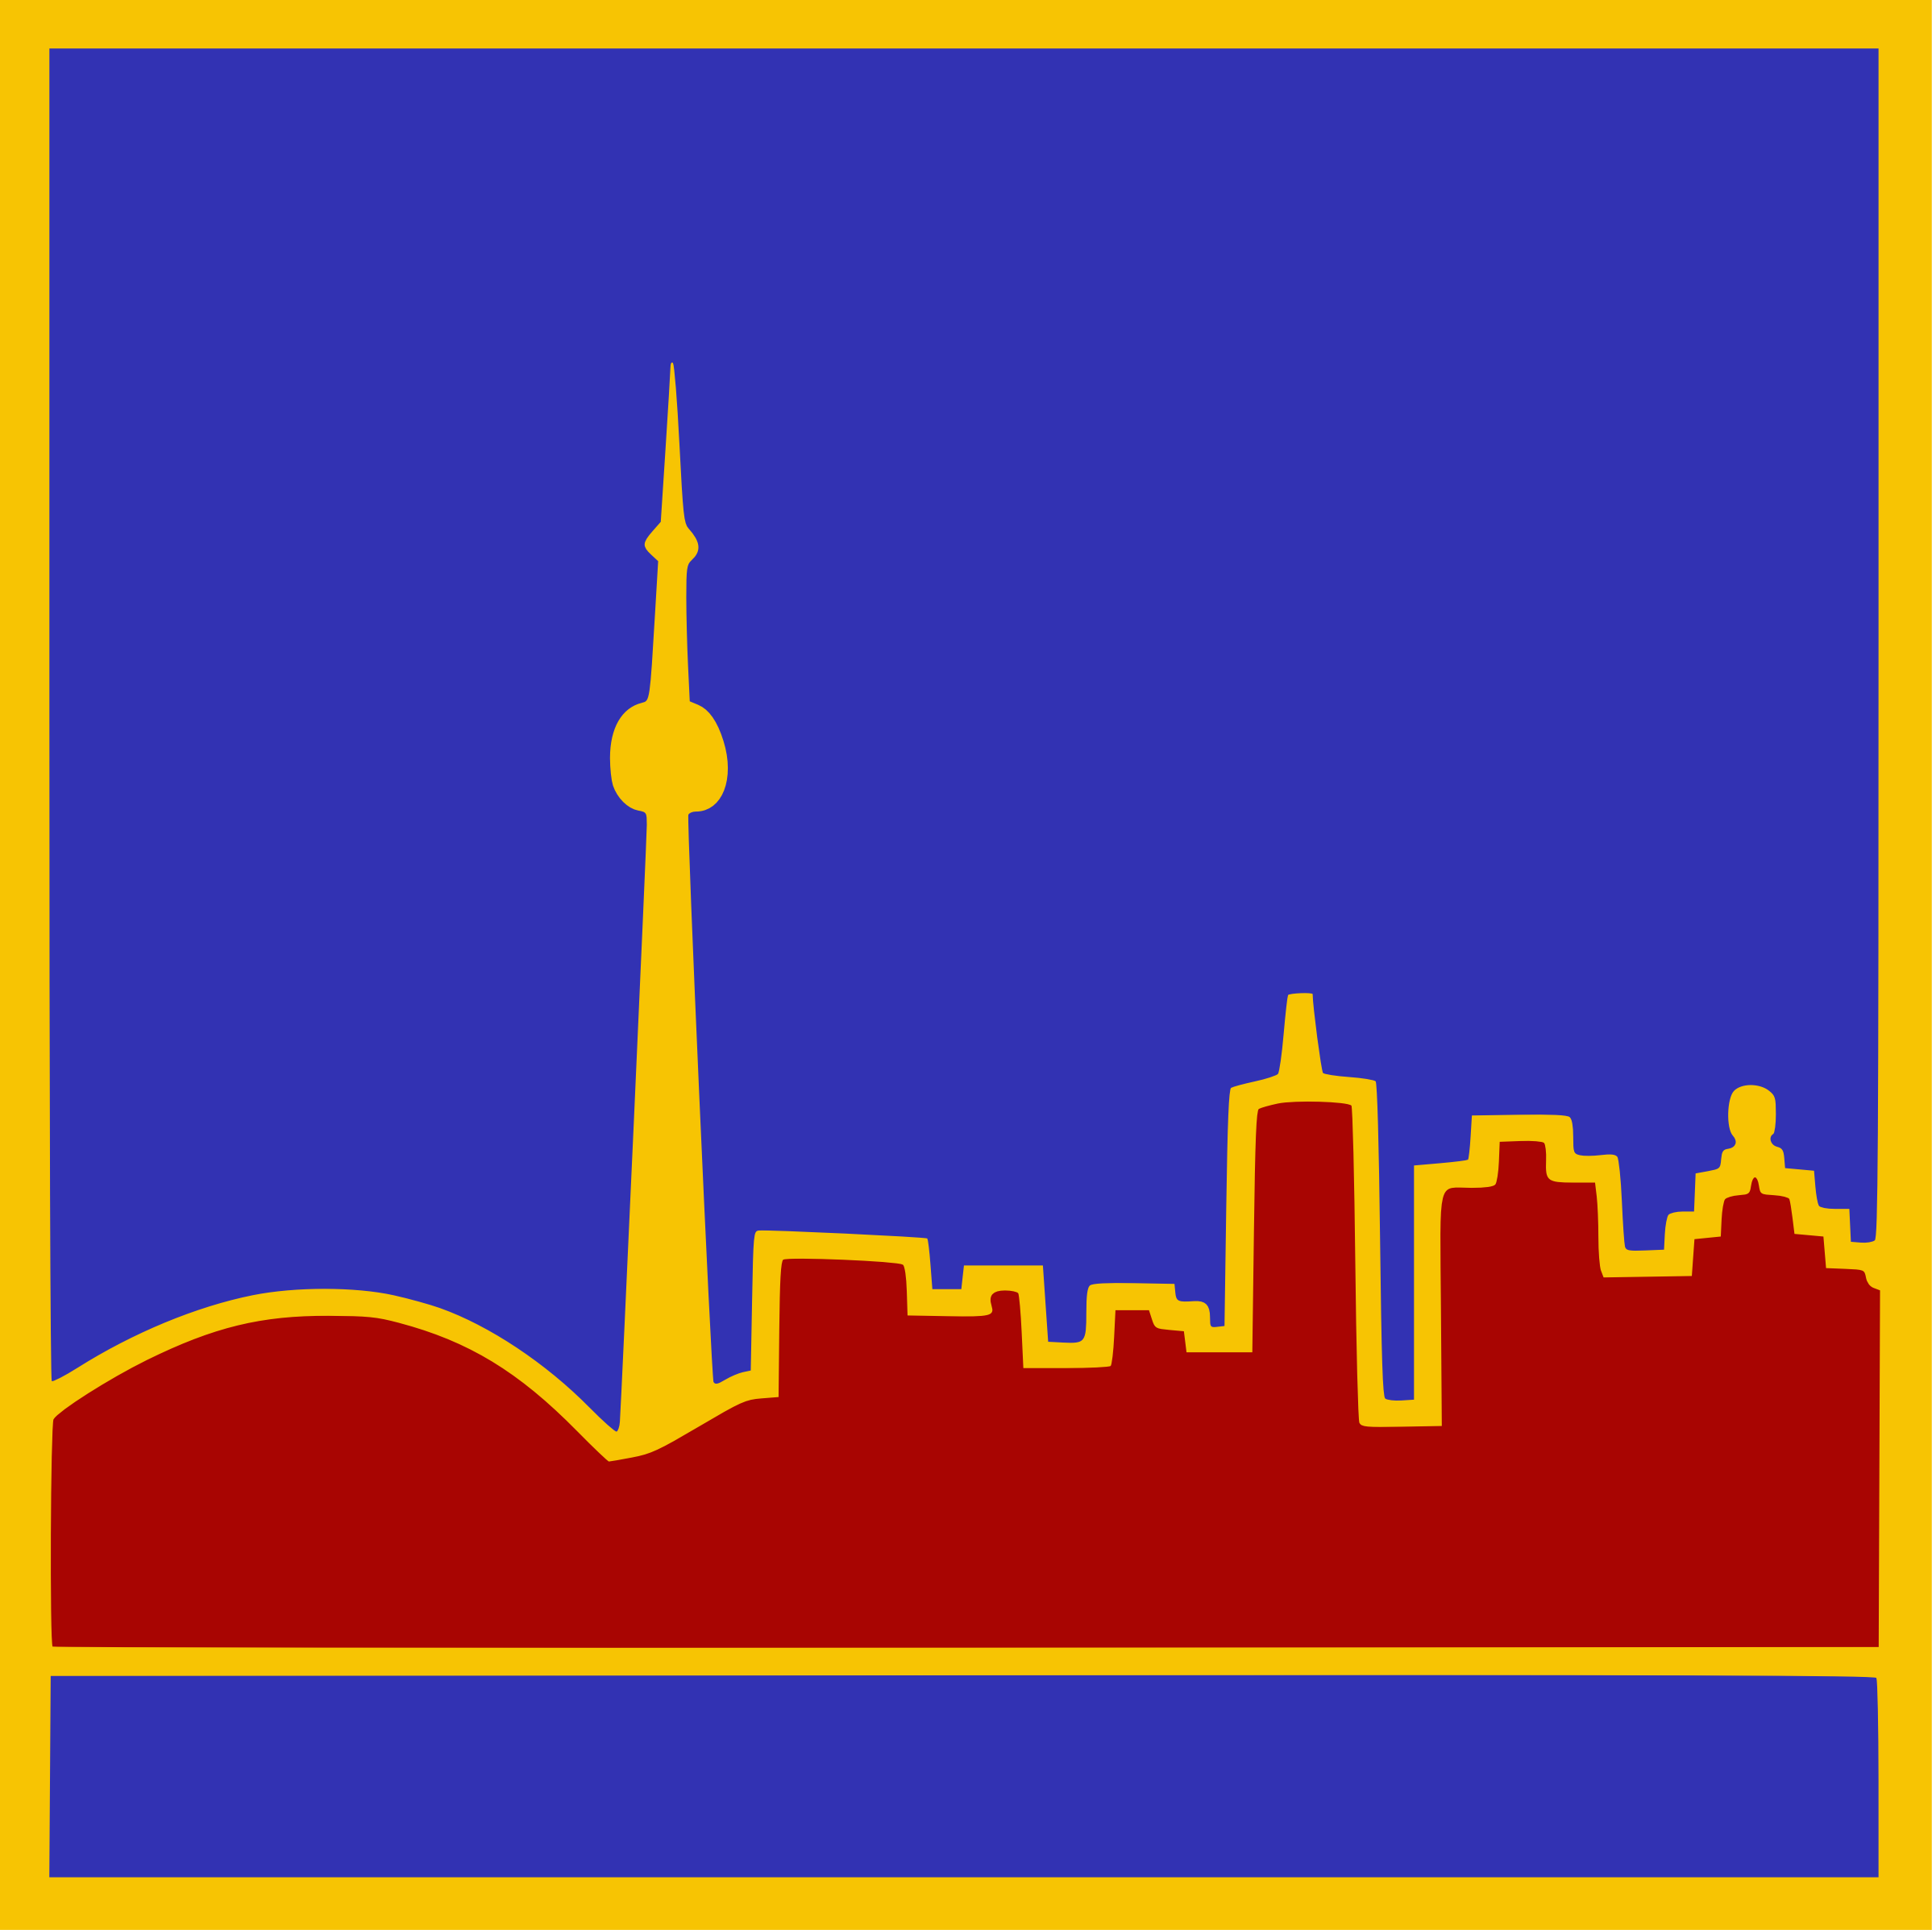 Toronto clipart #3, Download drawings